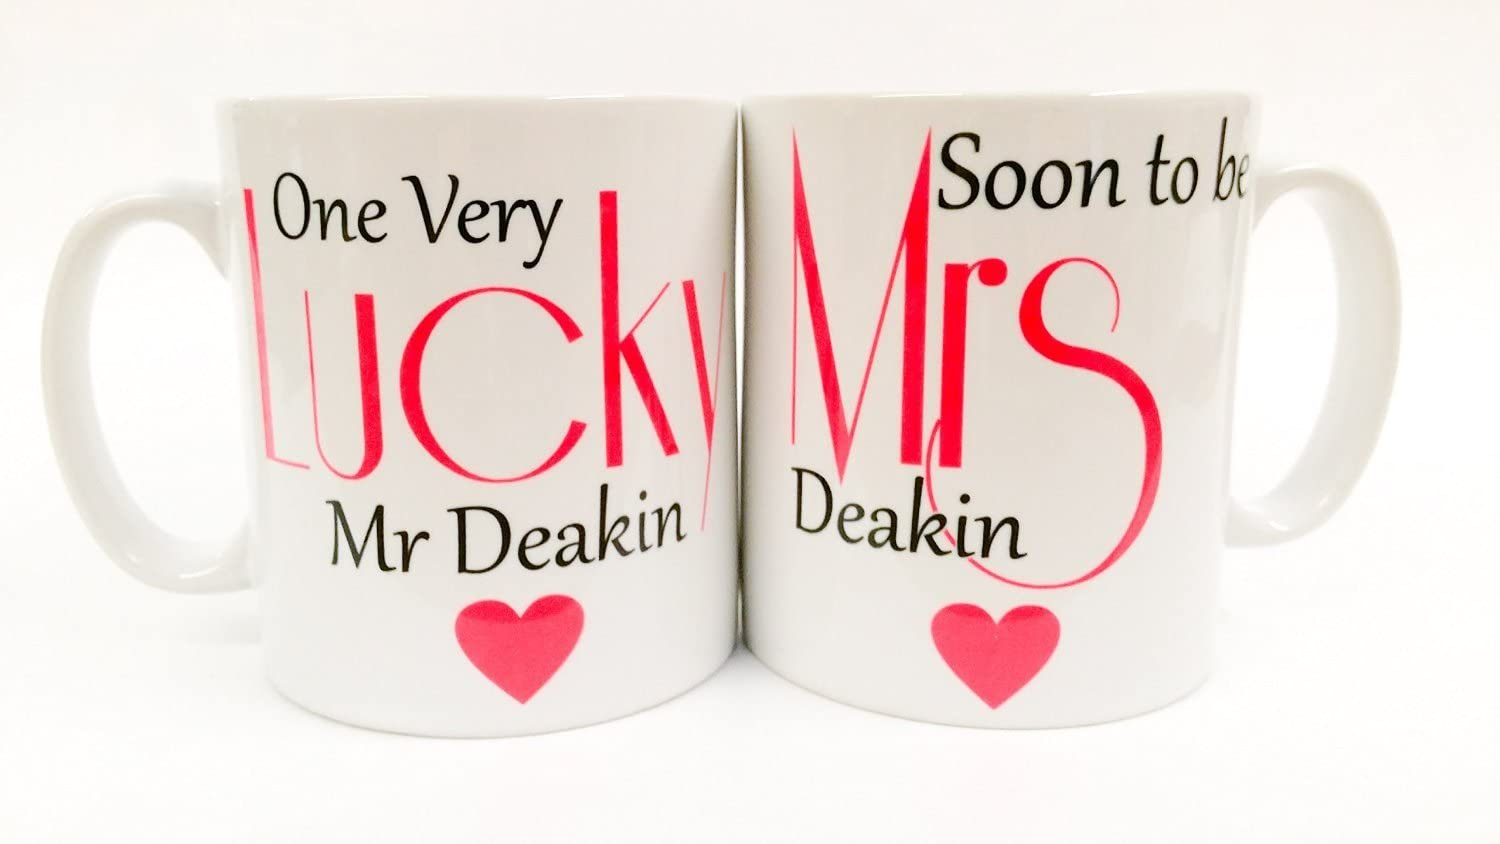 One Lucky Mr /& Soon to be Mrs! Amore Pair of China Wedding Engagement Gift Mugs